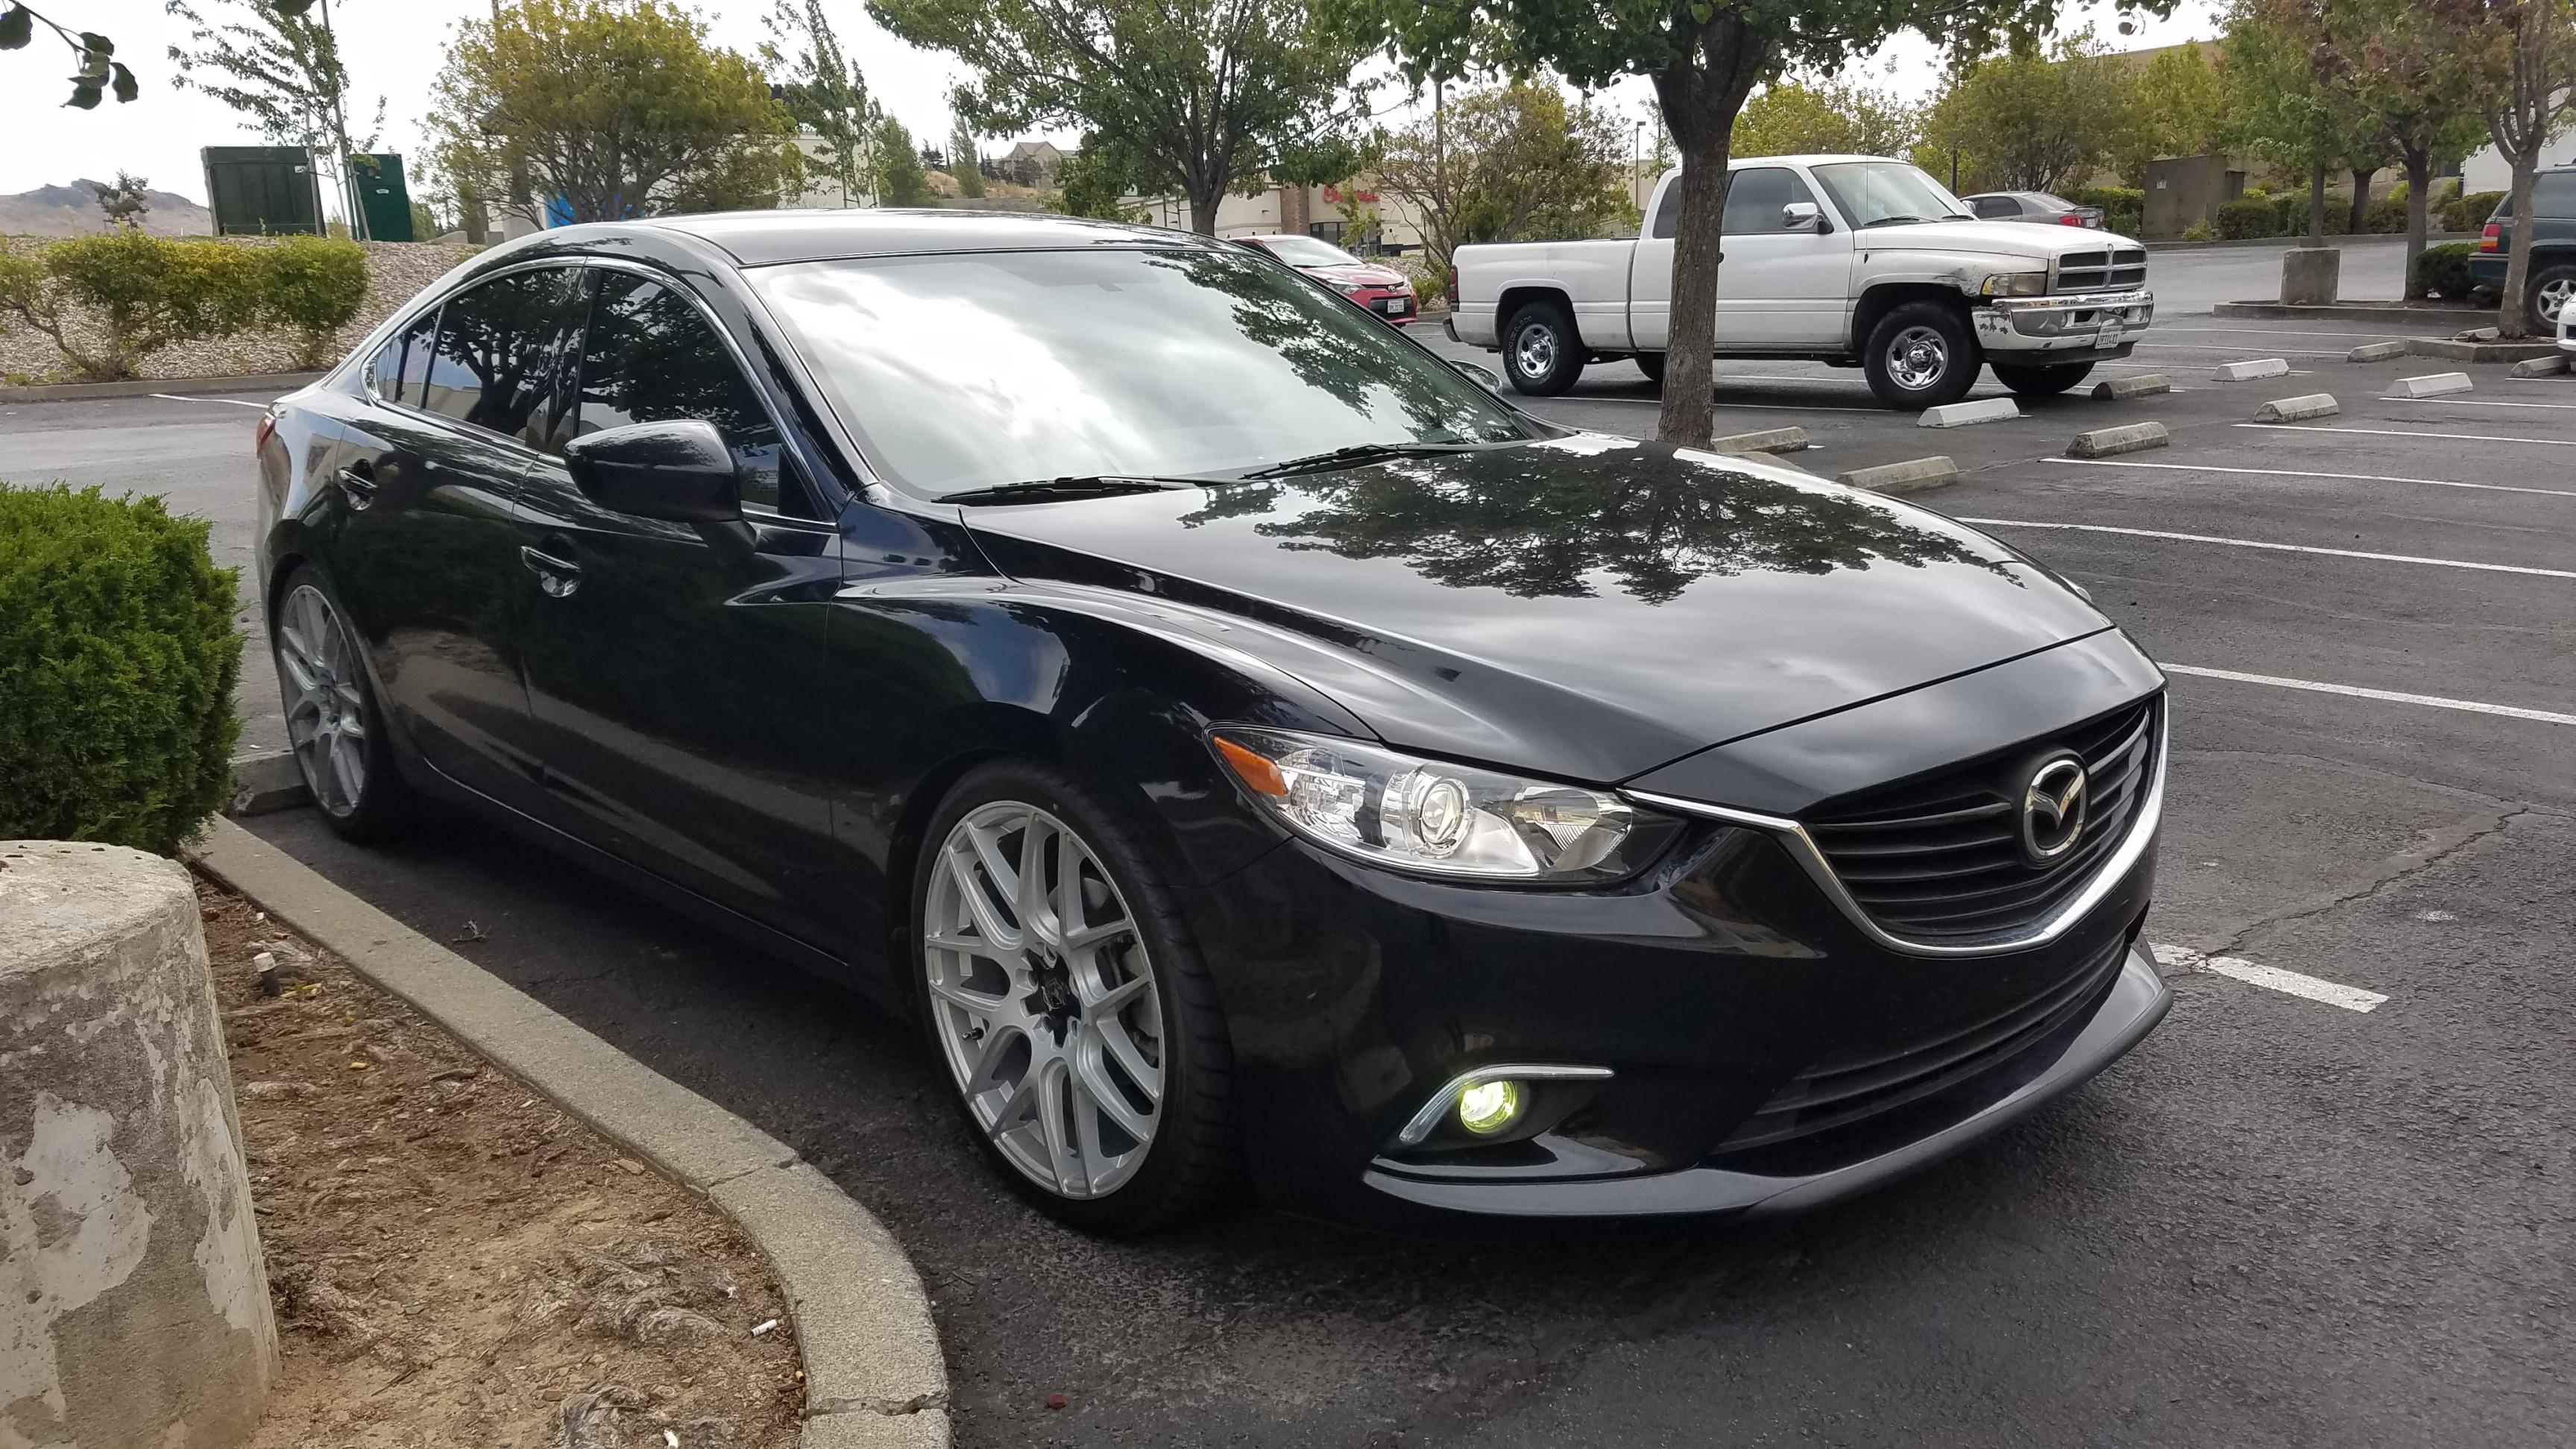 Fs 2015 Mazda 6 Mt With Mods Mazda 6 Forums Mazda 6 Forum Rh Forum  Mazda6club Com 2014 Mazda 3 Aftermarket White Tint Mazda 6 2009